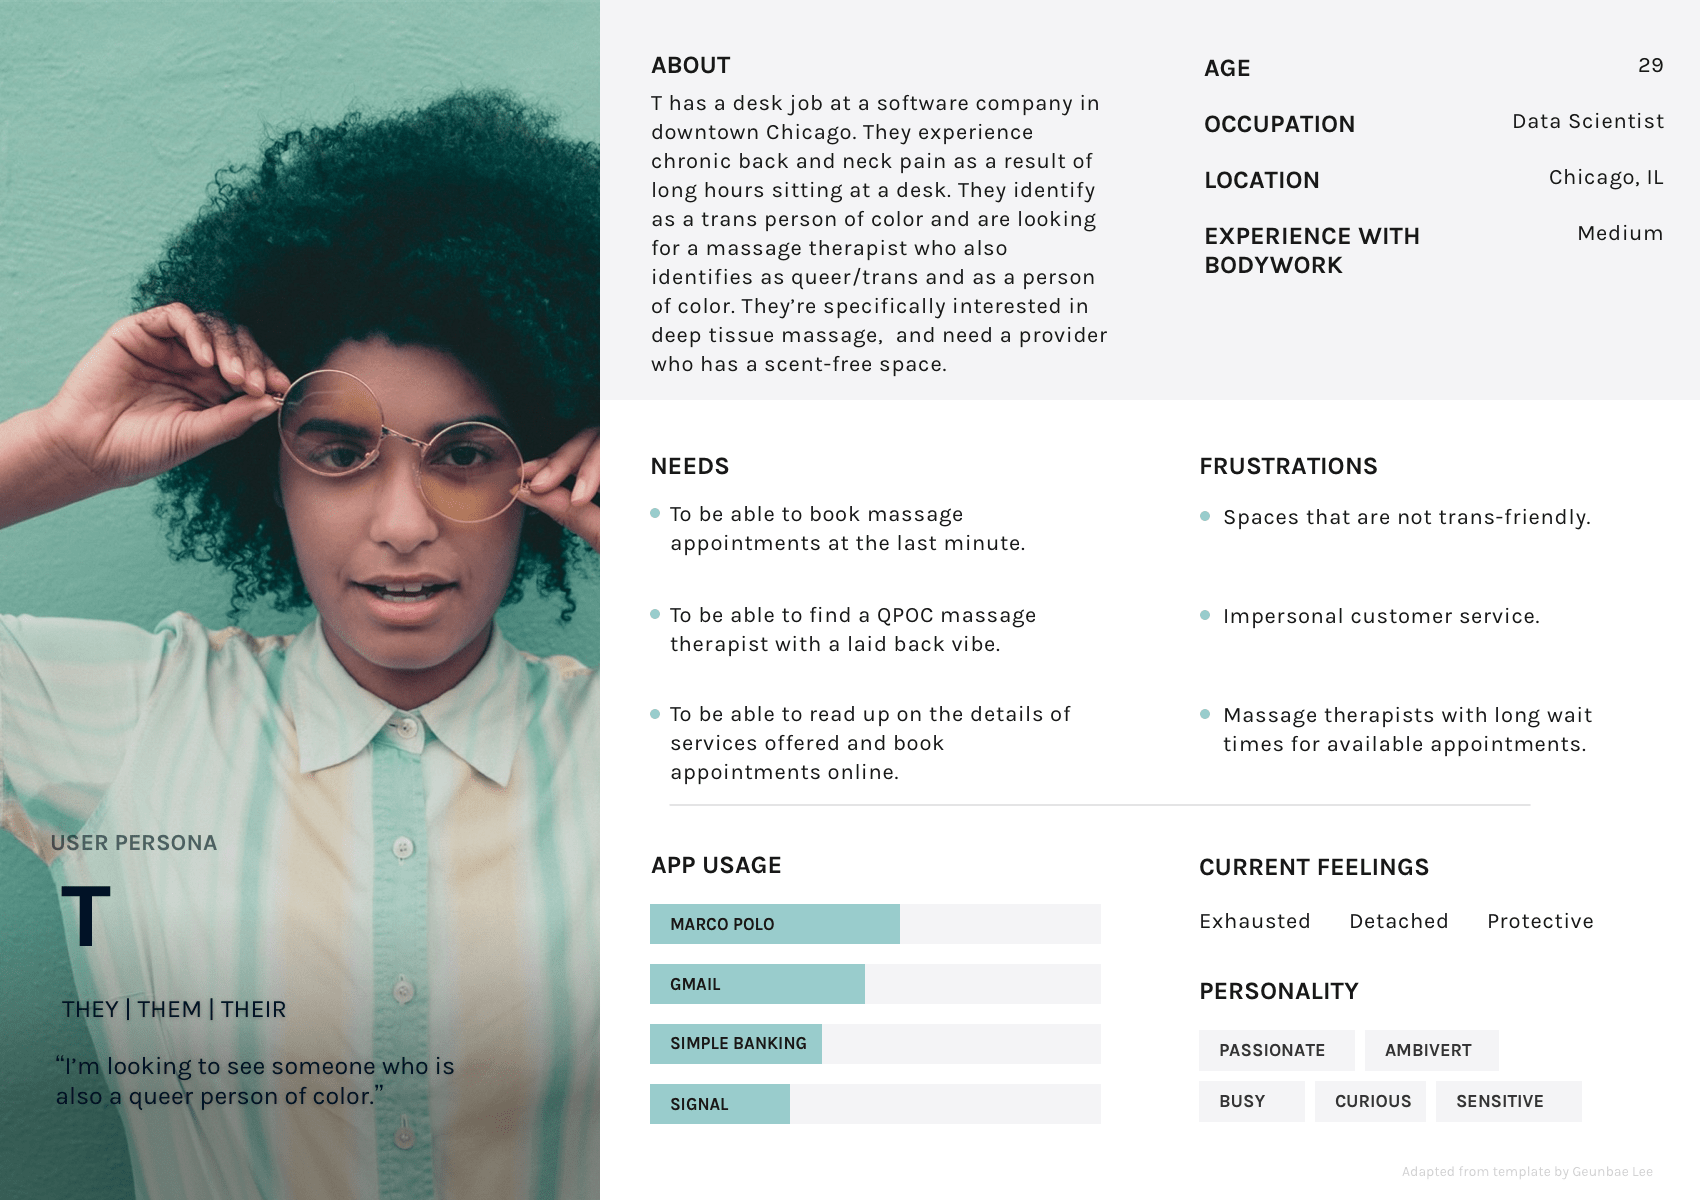 Document showing a persona in their late 20s named T. This persona represents a target audience group. The document includes a bio and personality information about this hypothetical character.